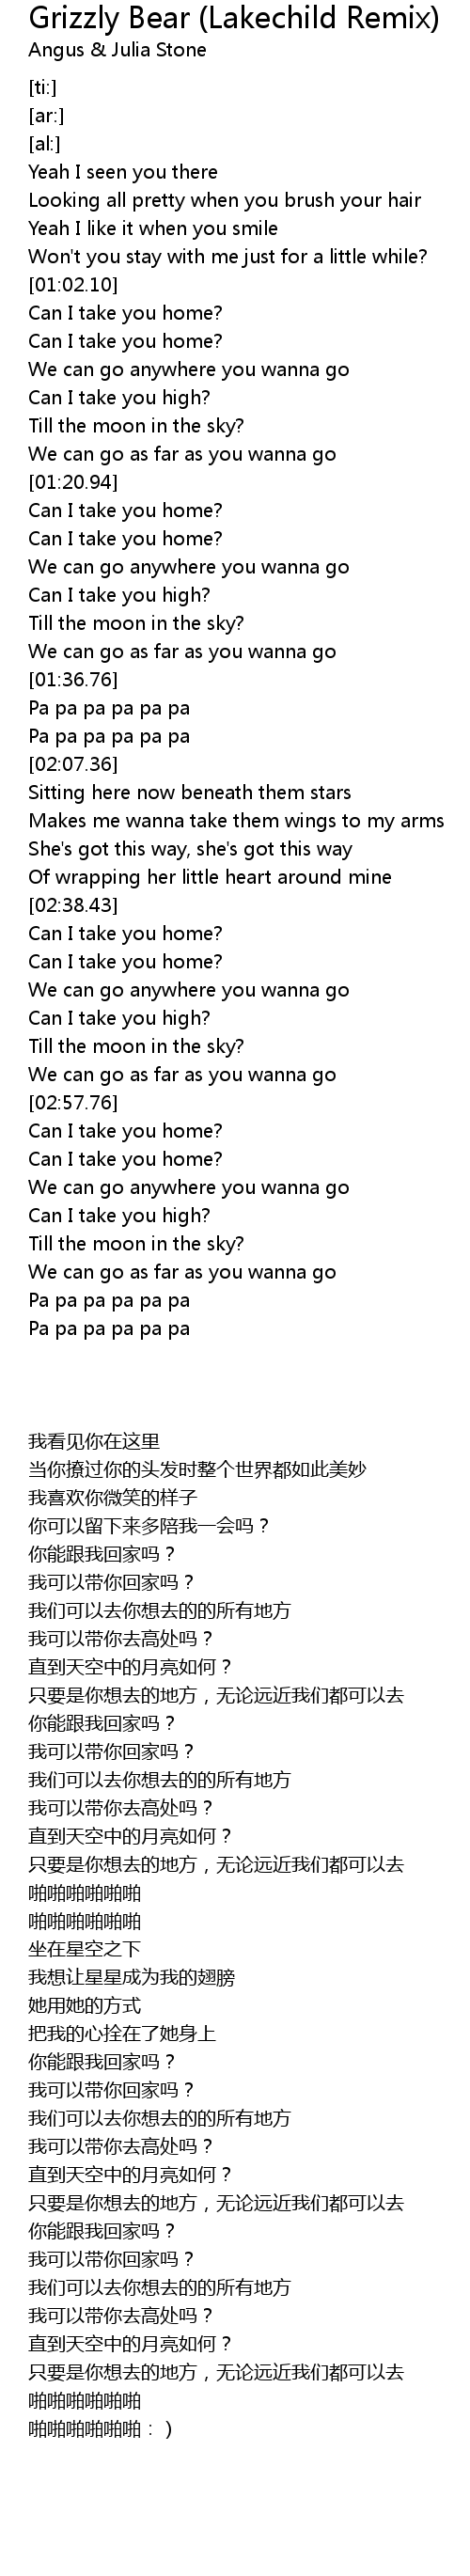 You Wanna Go I Can Take You There : wanna, there, Grizzly, (Lakechild, Remix), Lyrics, Follow